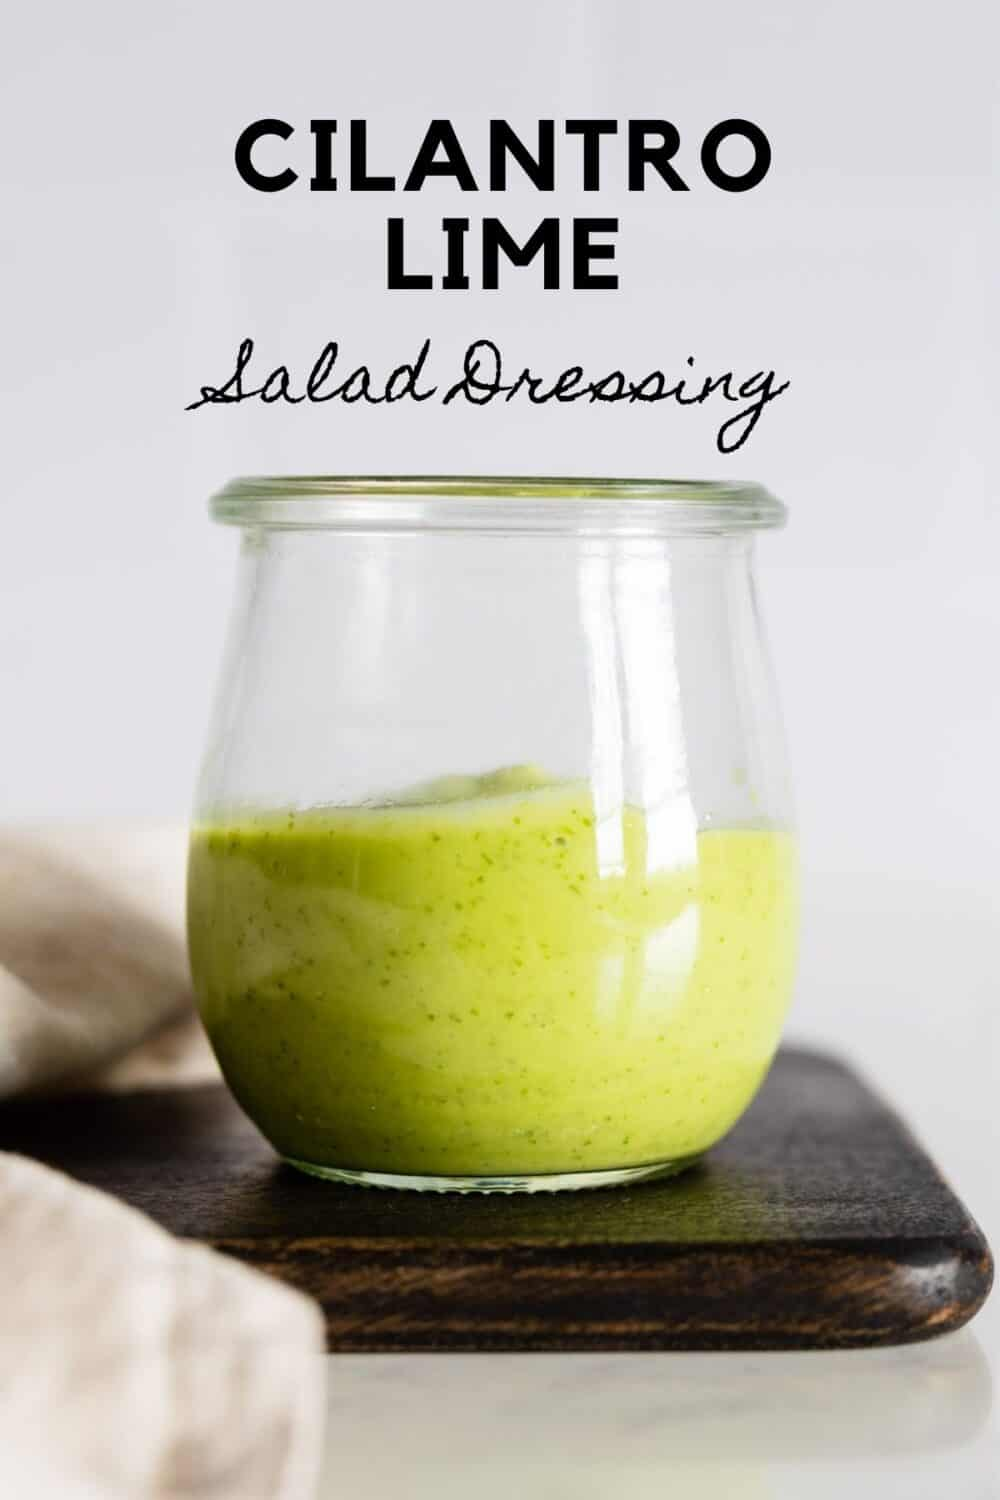 Glass jar with green salad dressing with title reading: Cilantro Lime Salad Dressing.